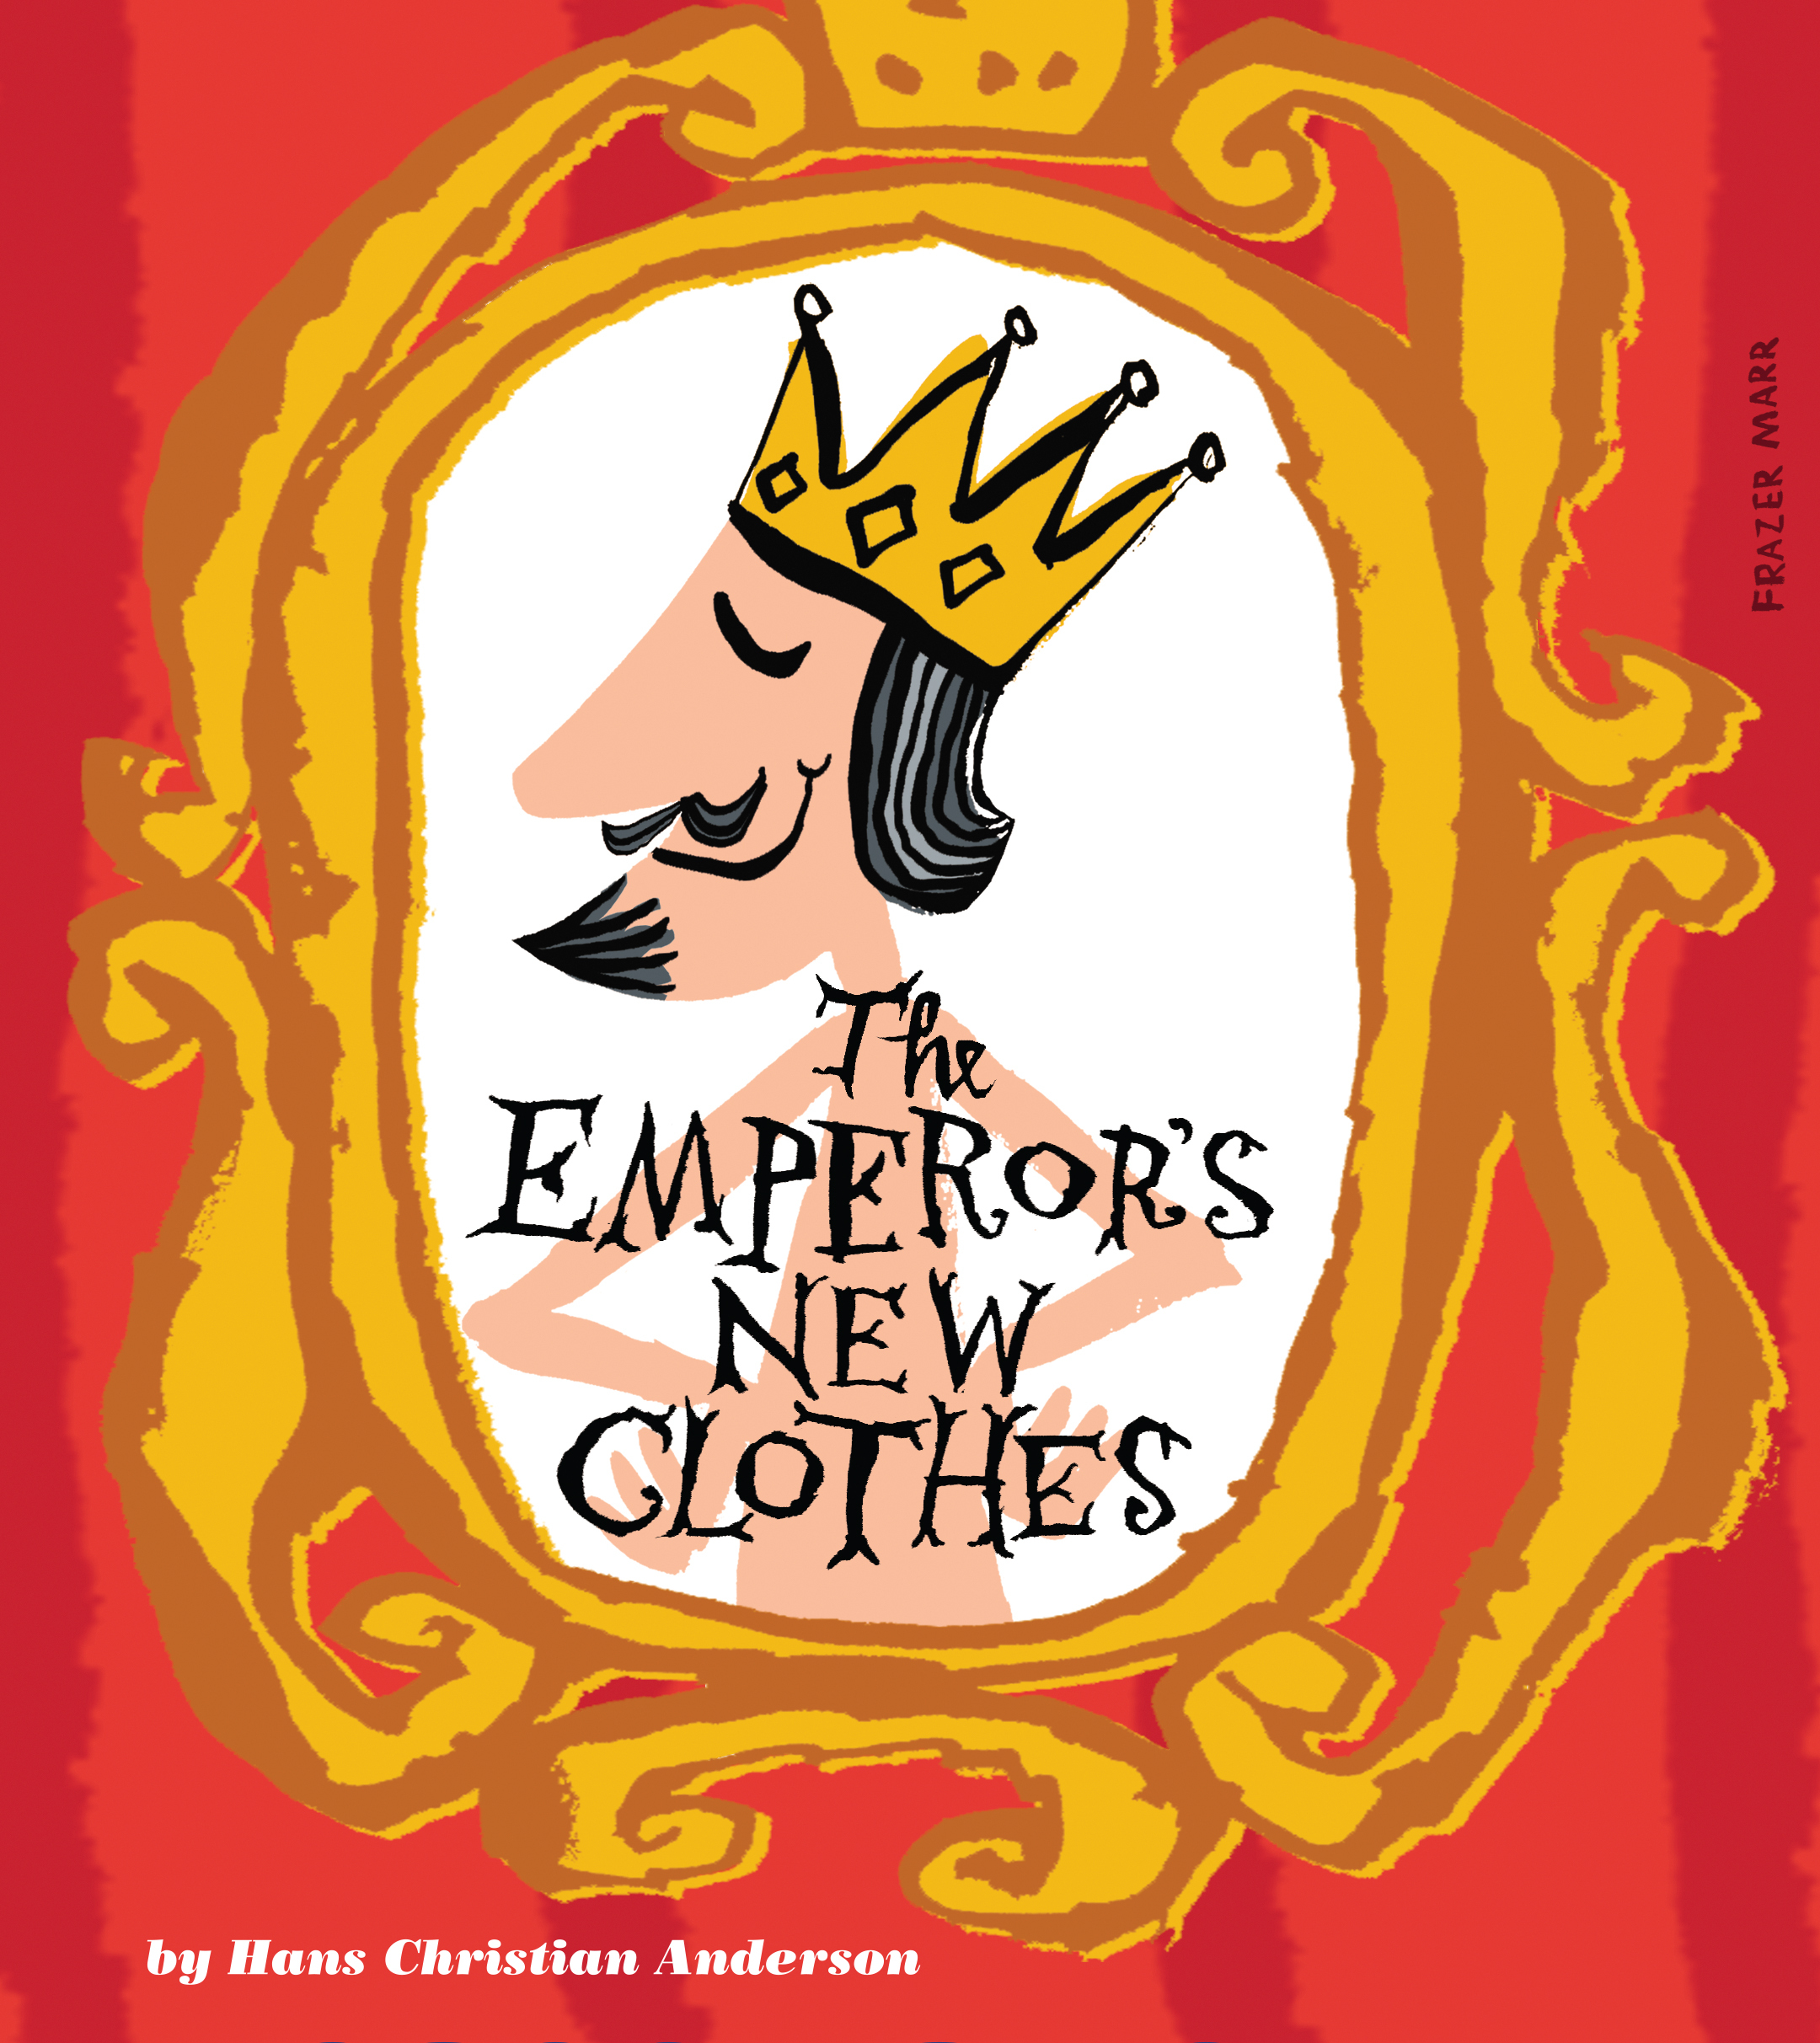 The Emperor's New Clothes is o be staged at Cardigan Castle